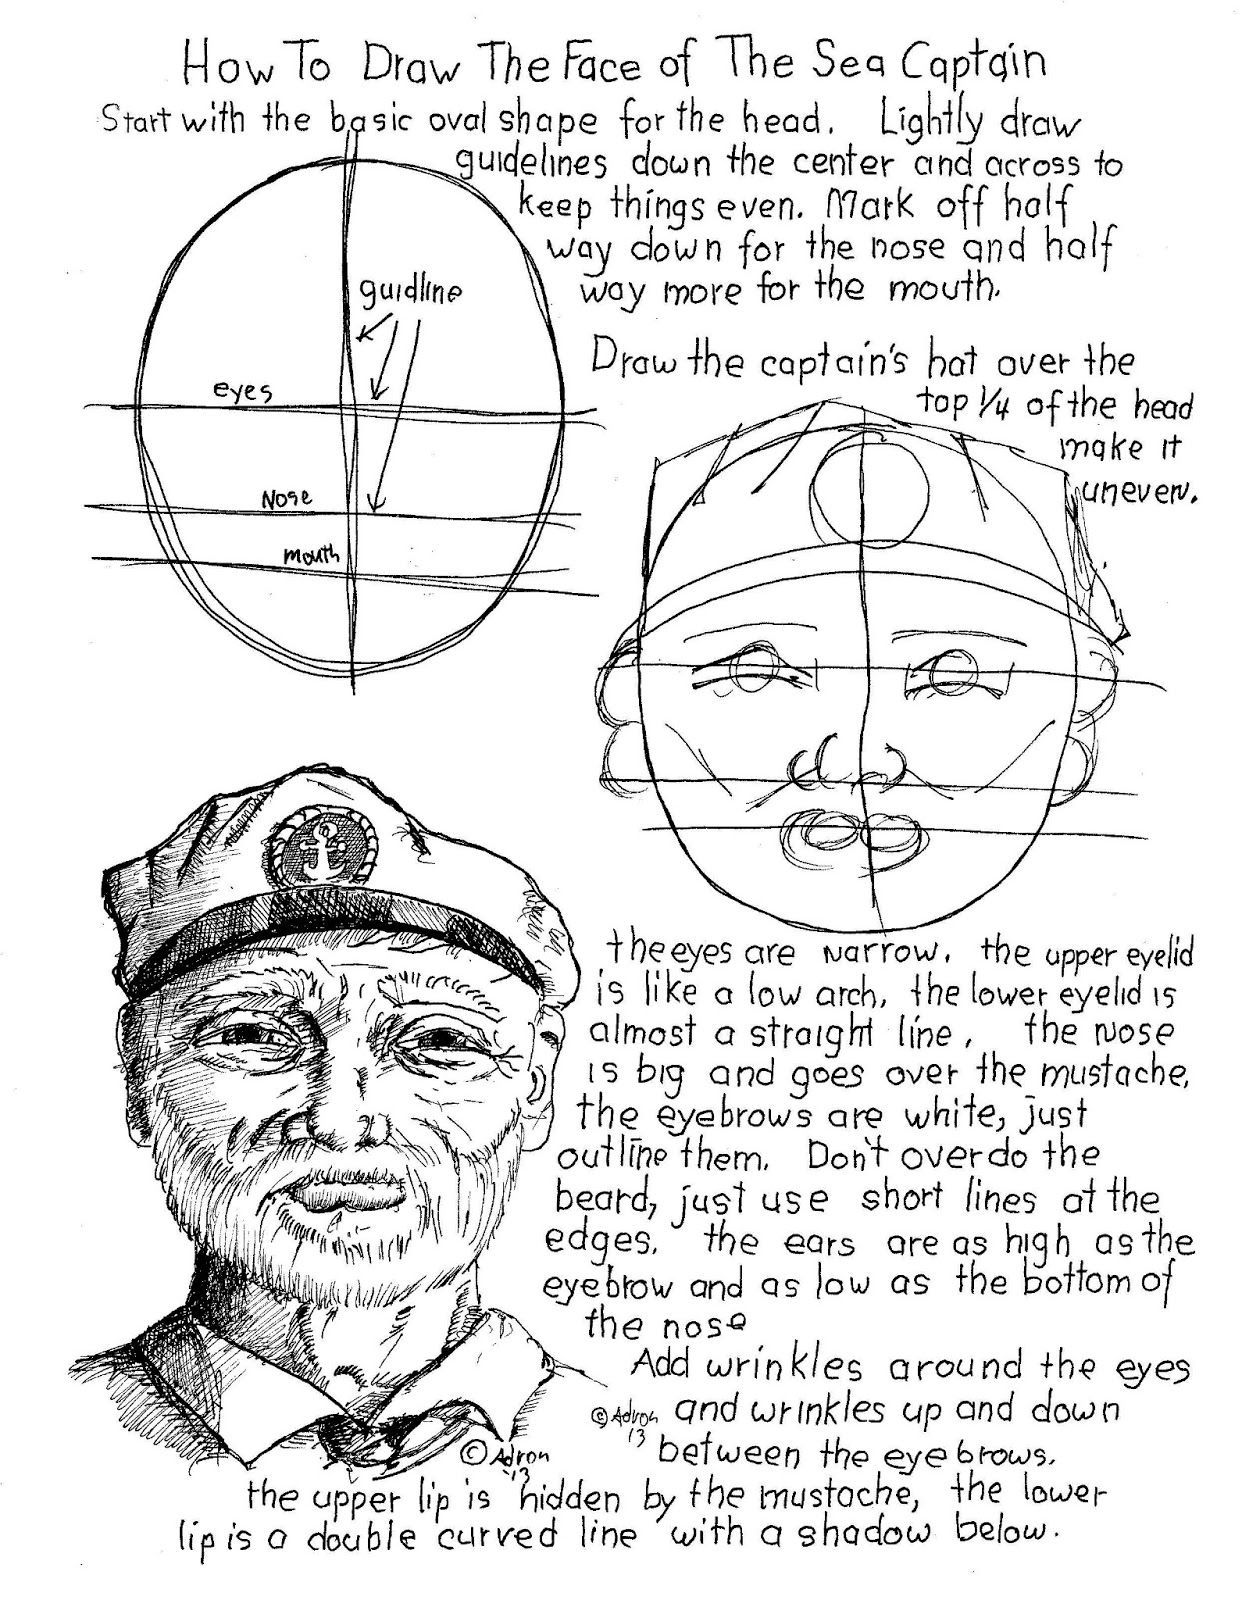 How To Draw The Face Of The Old Sea Captain Printable